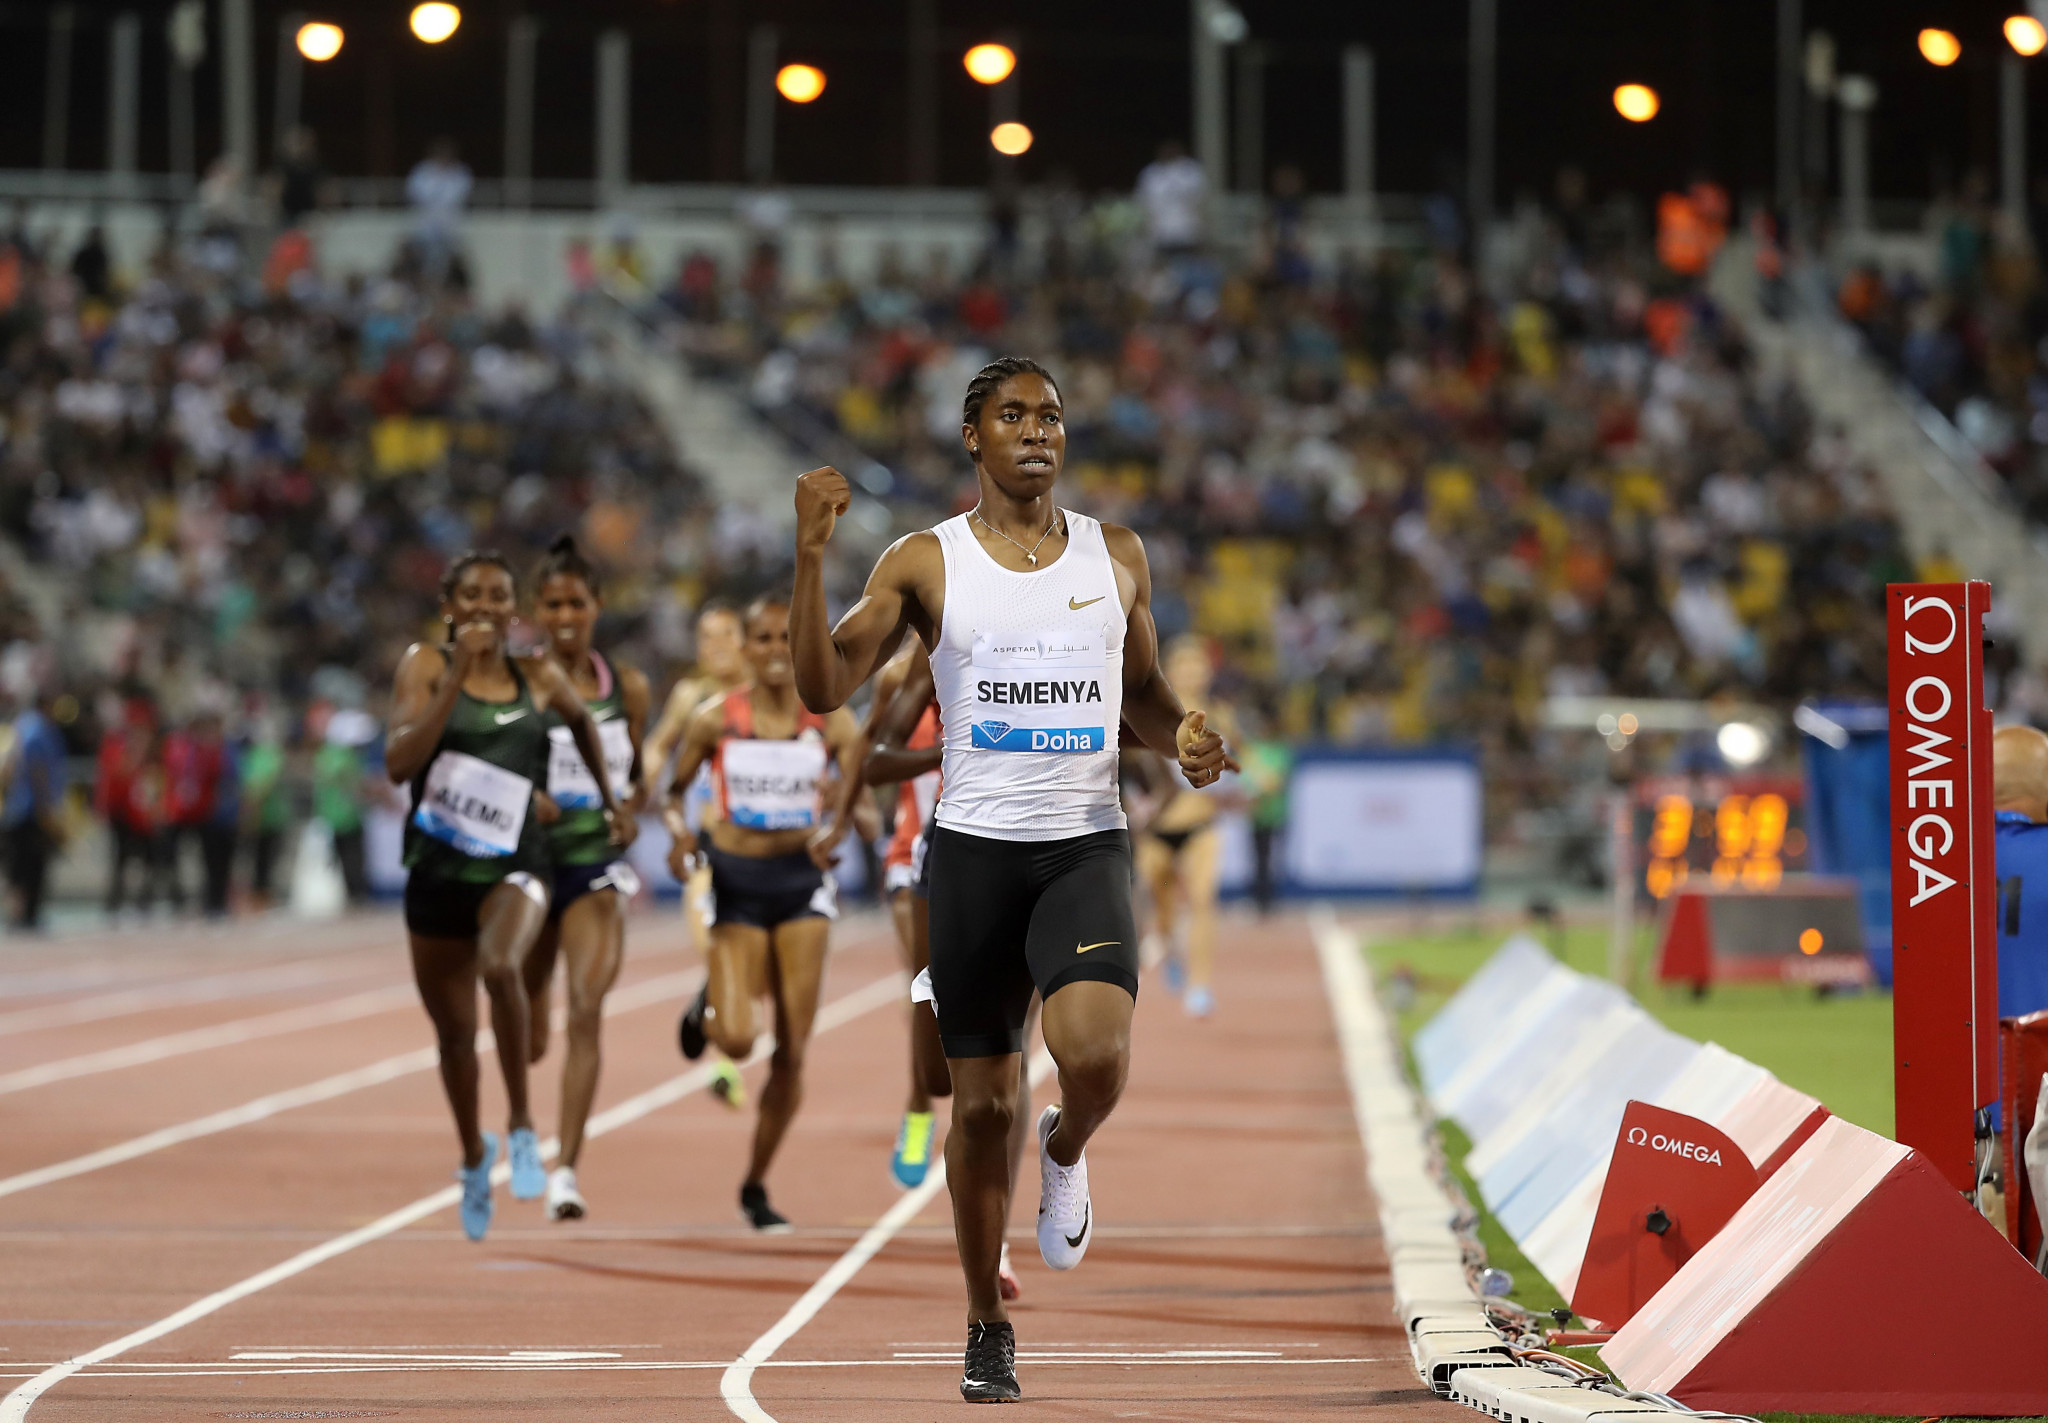 Caster Semenya wins the women's 1500m at the IAAF Diamond League meeting in Doha ©Getty Images